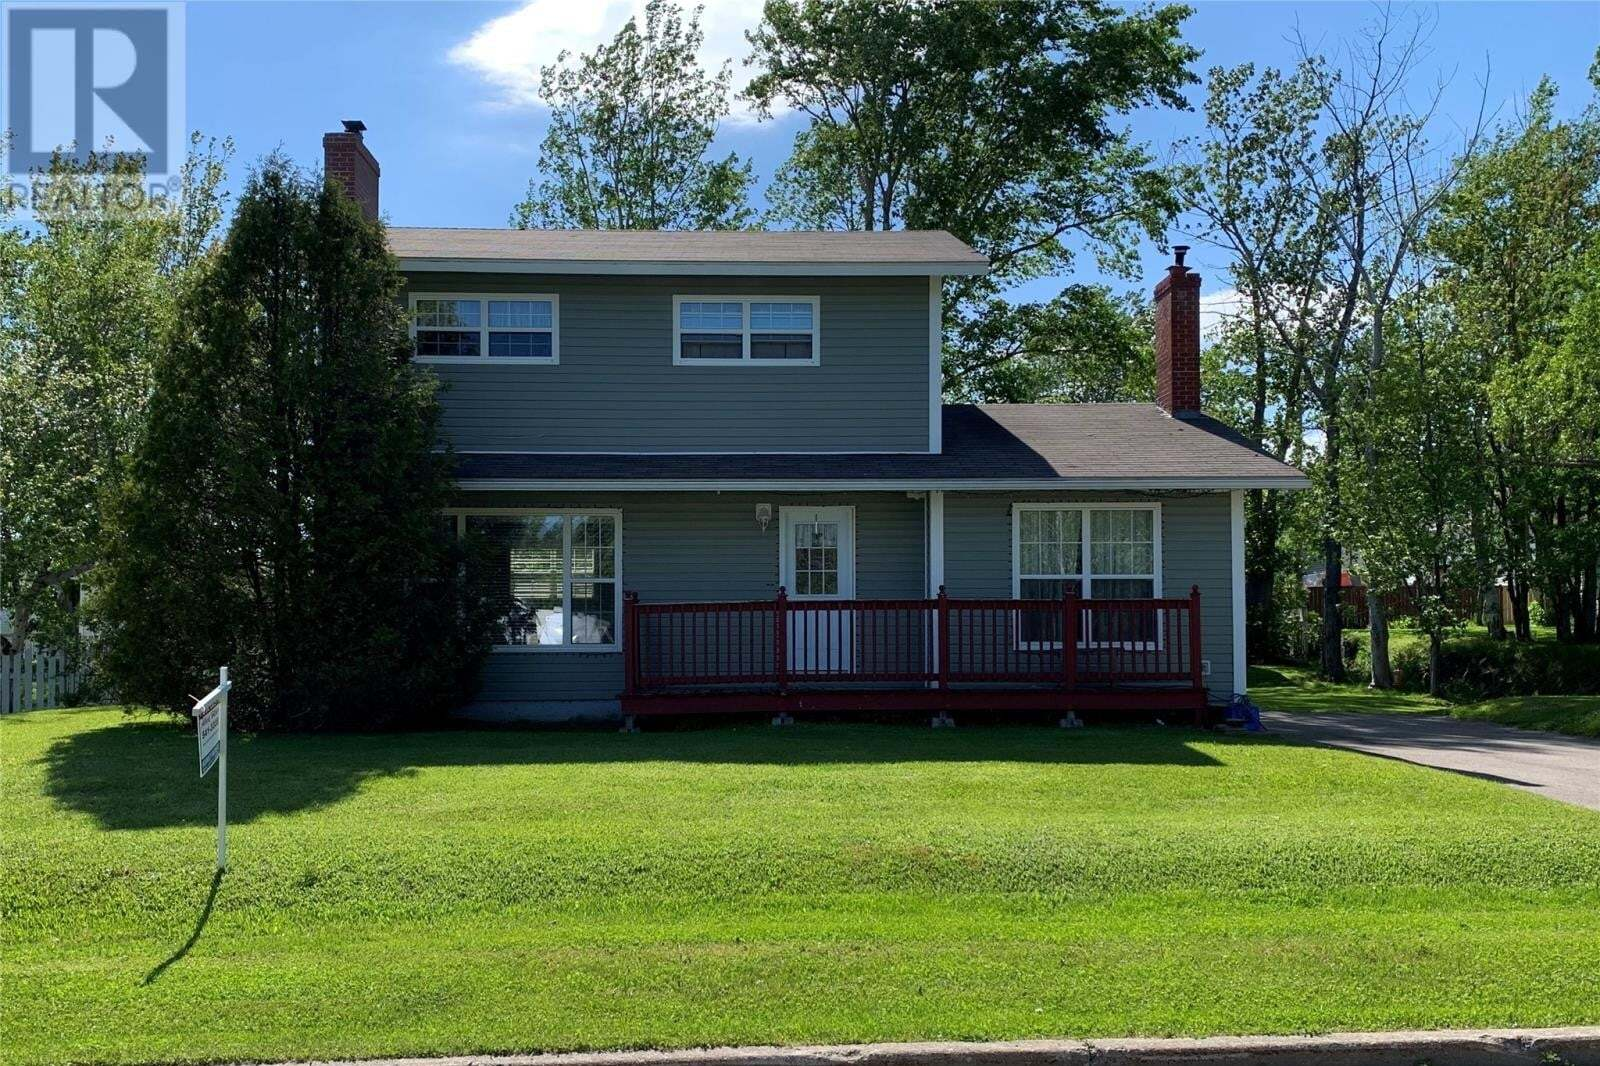 House for sale at 5 Maple Cres Lewisporte Newfoundland - MLS: 1216410